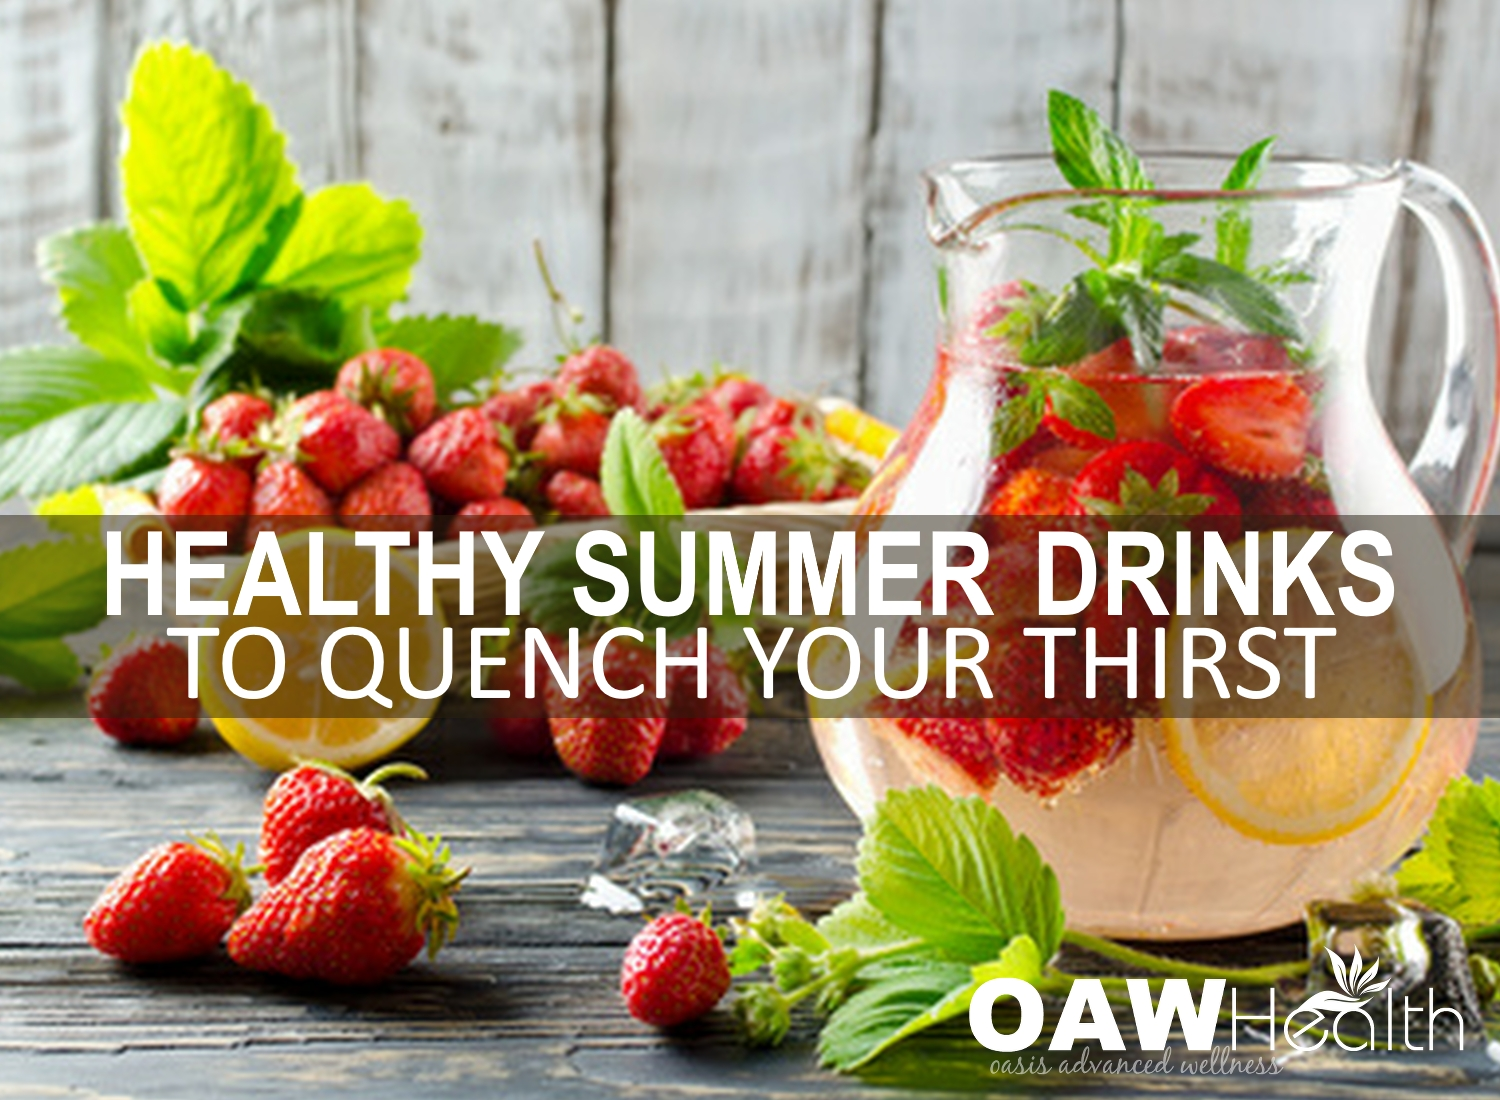 Healthy Summer Drinks to Quench Your Thirst